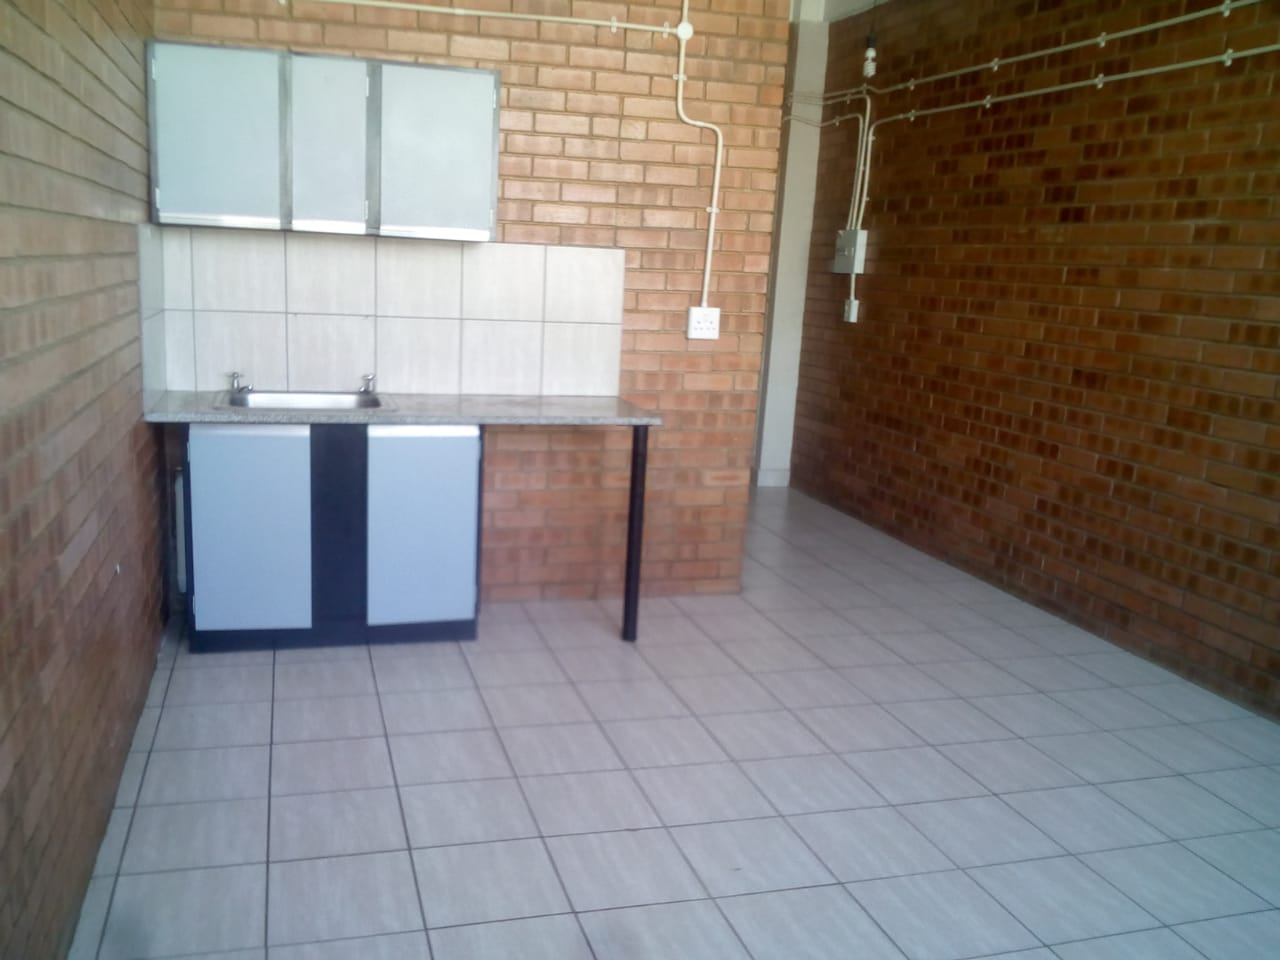 Bachelor flat to let - Maboneng